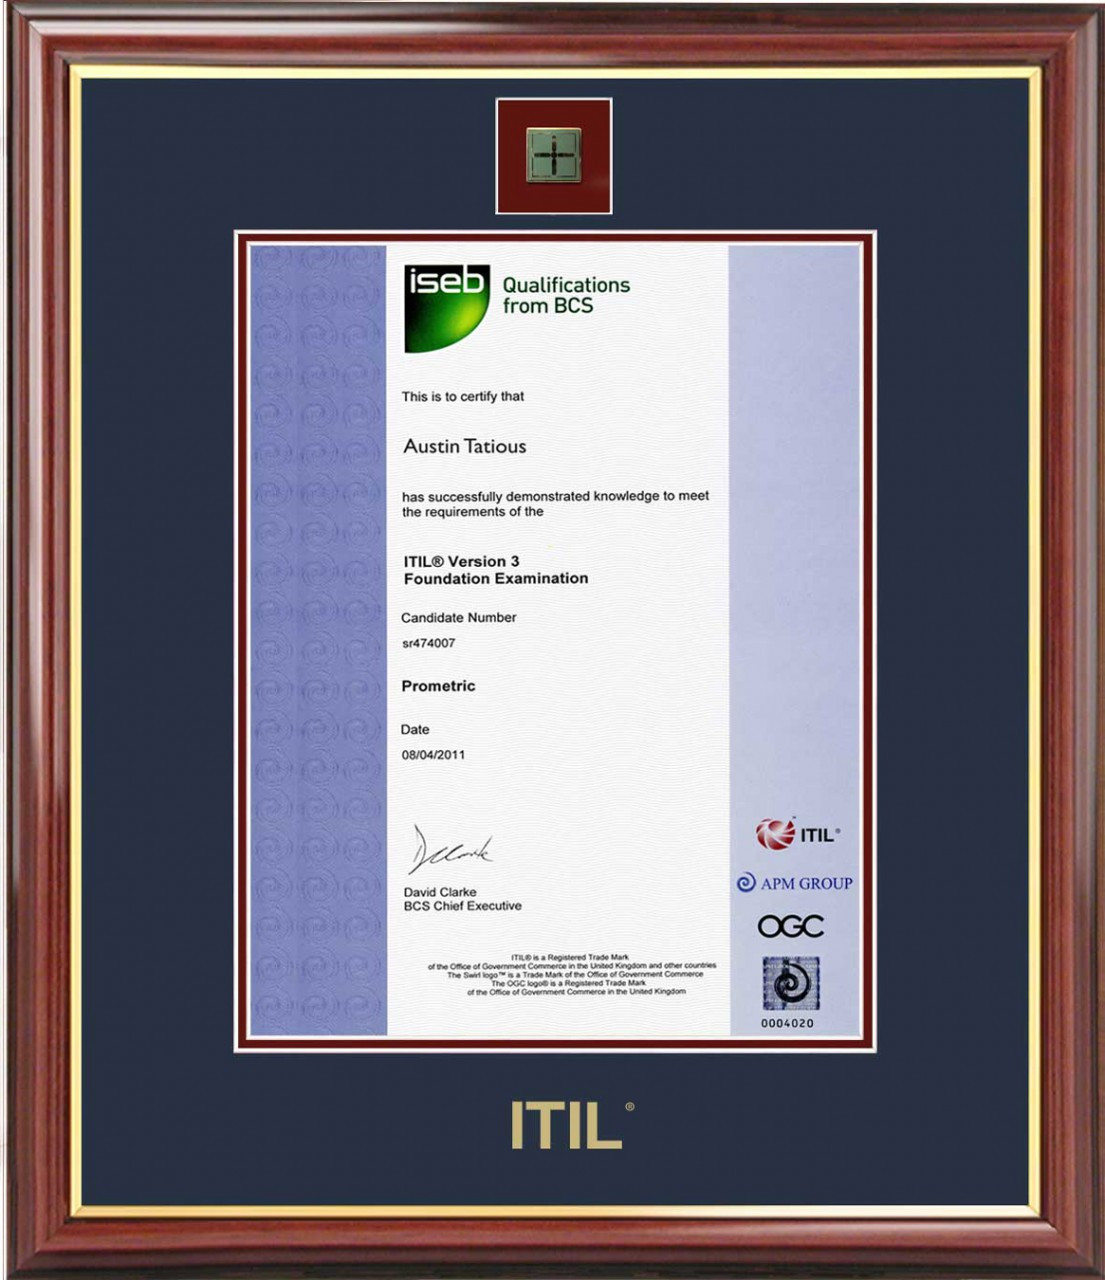 Itil 174 Certificate Frame Mahogany With Navy Mat Amp Lapel Pin